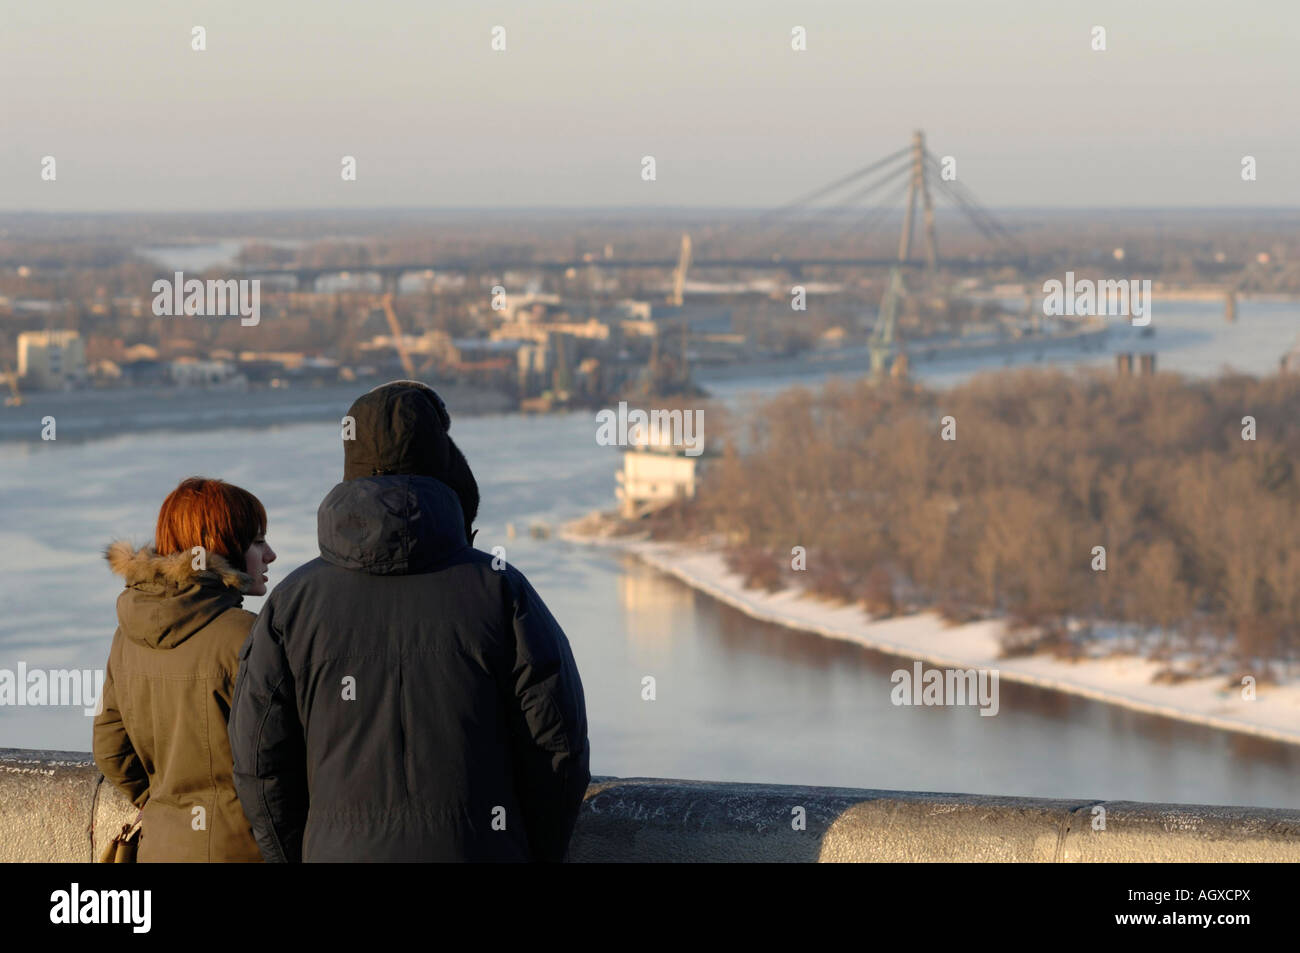 Romantic couple in Kiev overlooking the River Dnieper - Stock Image